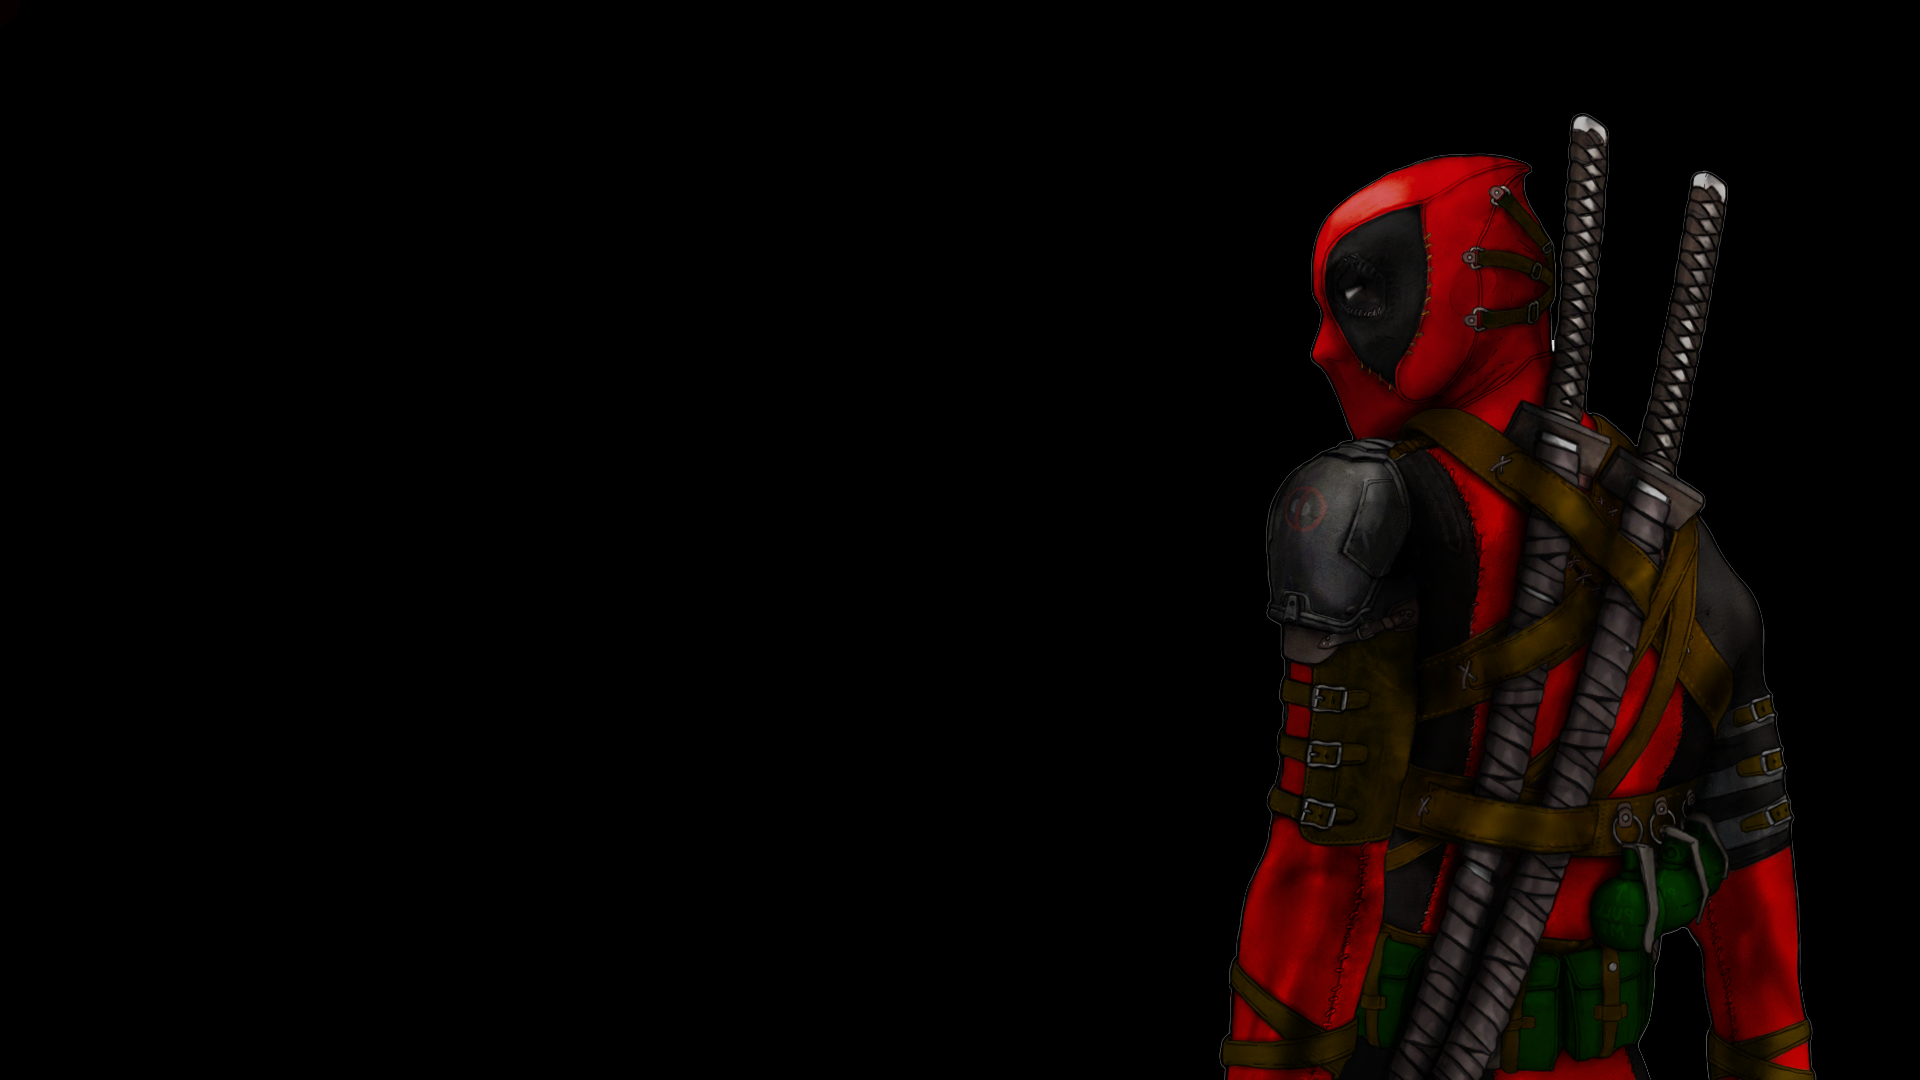 deadpool iphone wallpaper reddit